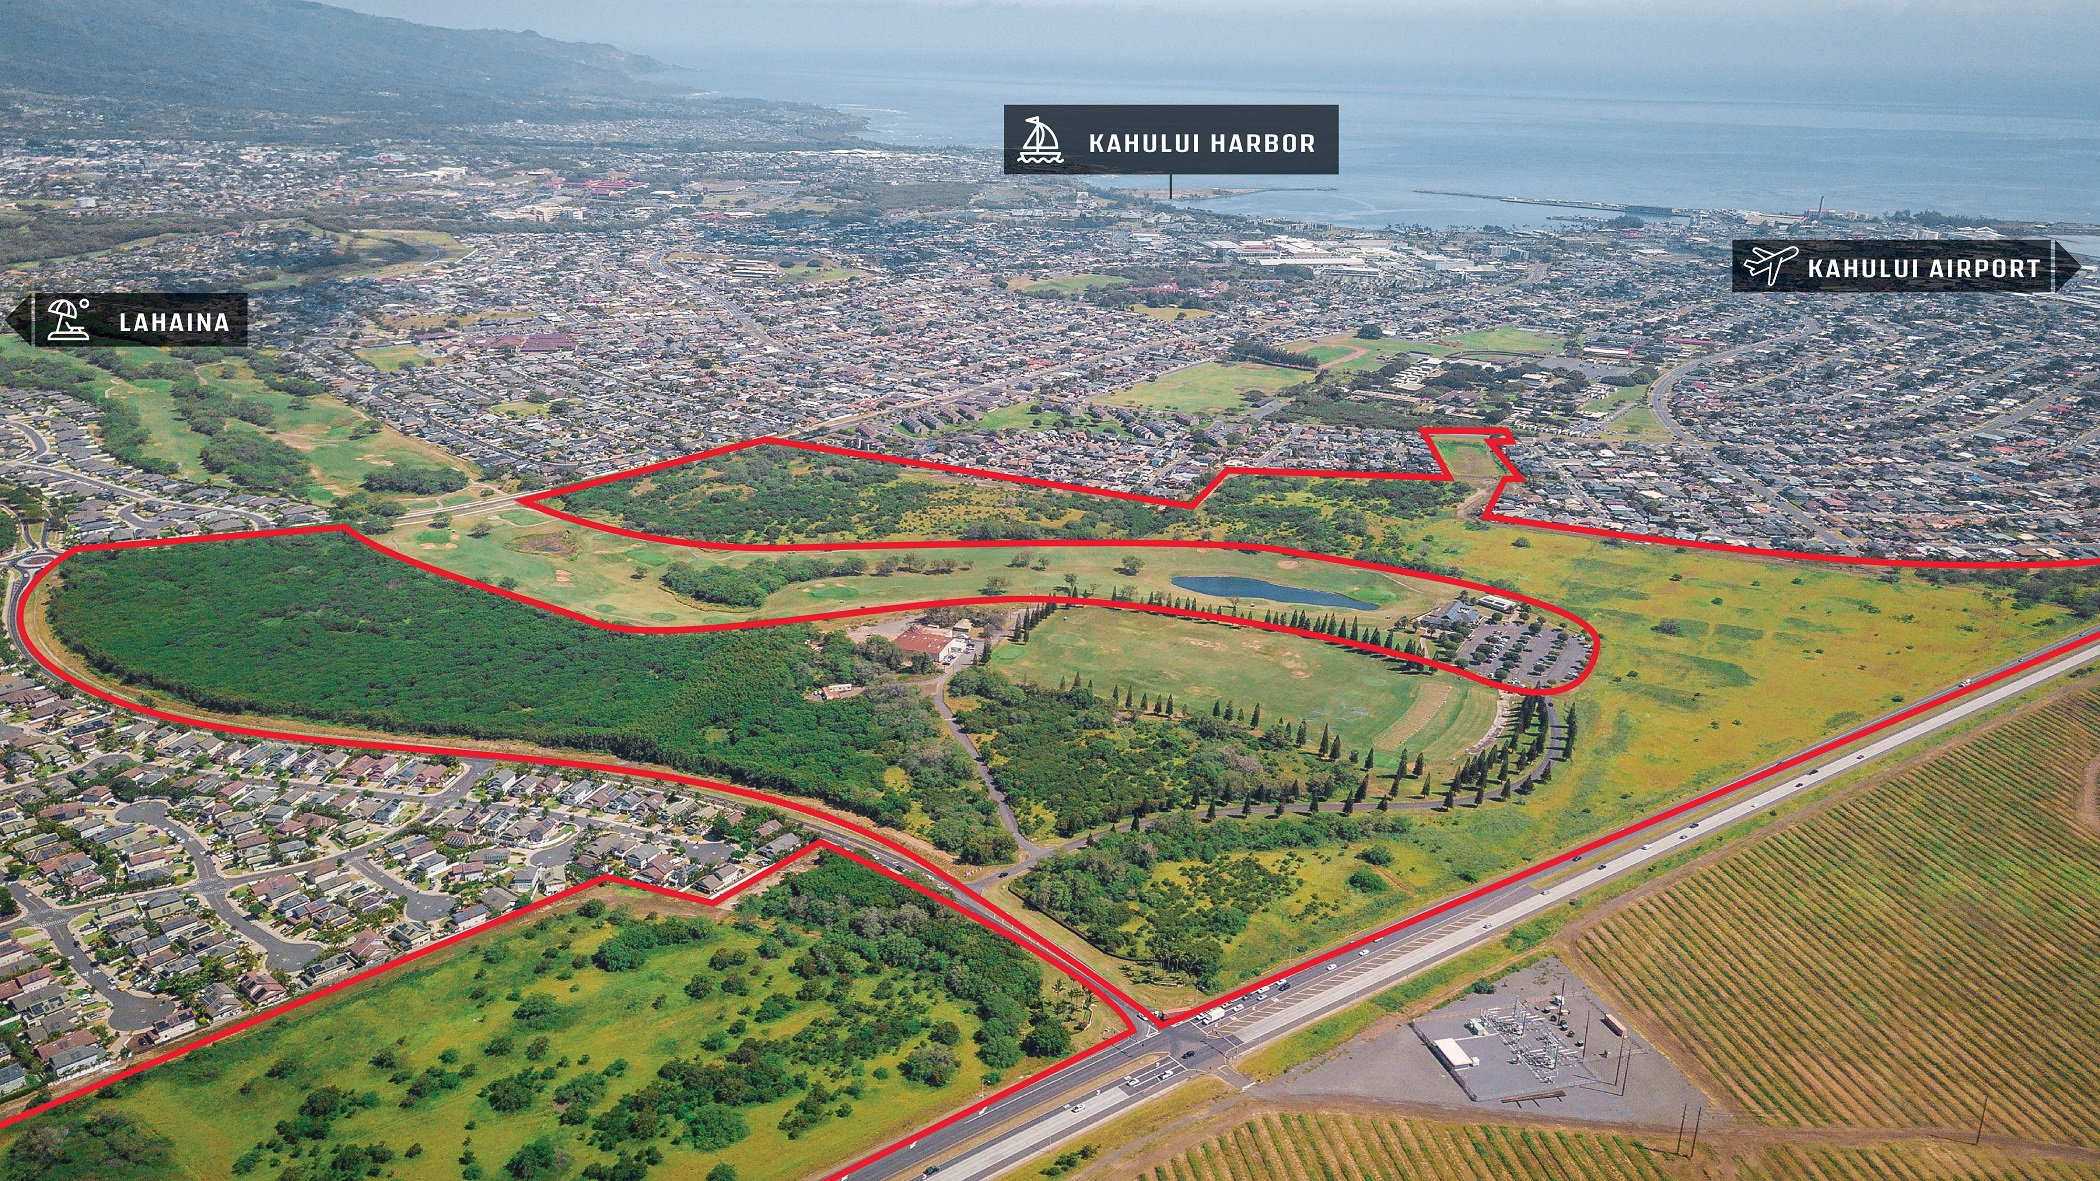 460 Acres Entitled for 1,900 New Housing Units in Central Maui Hub for Sale